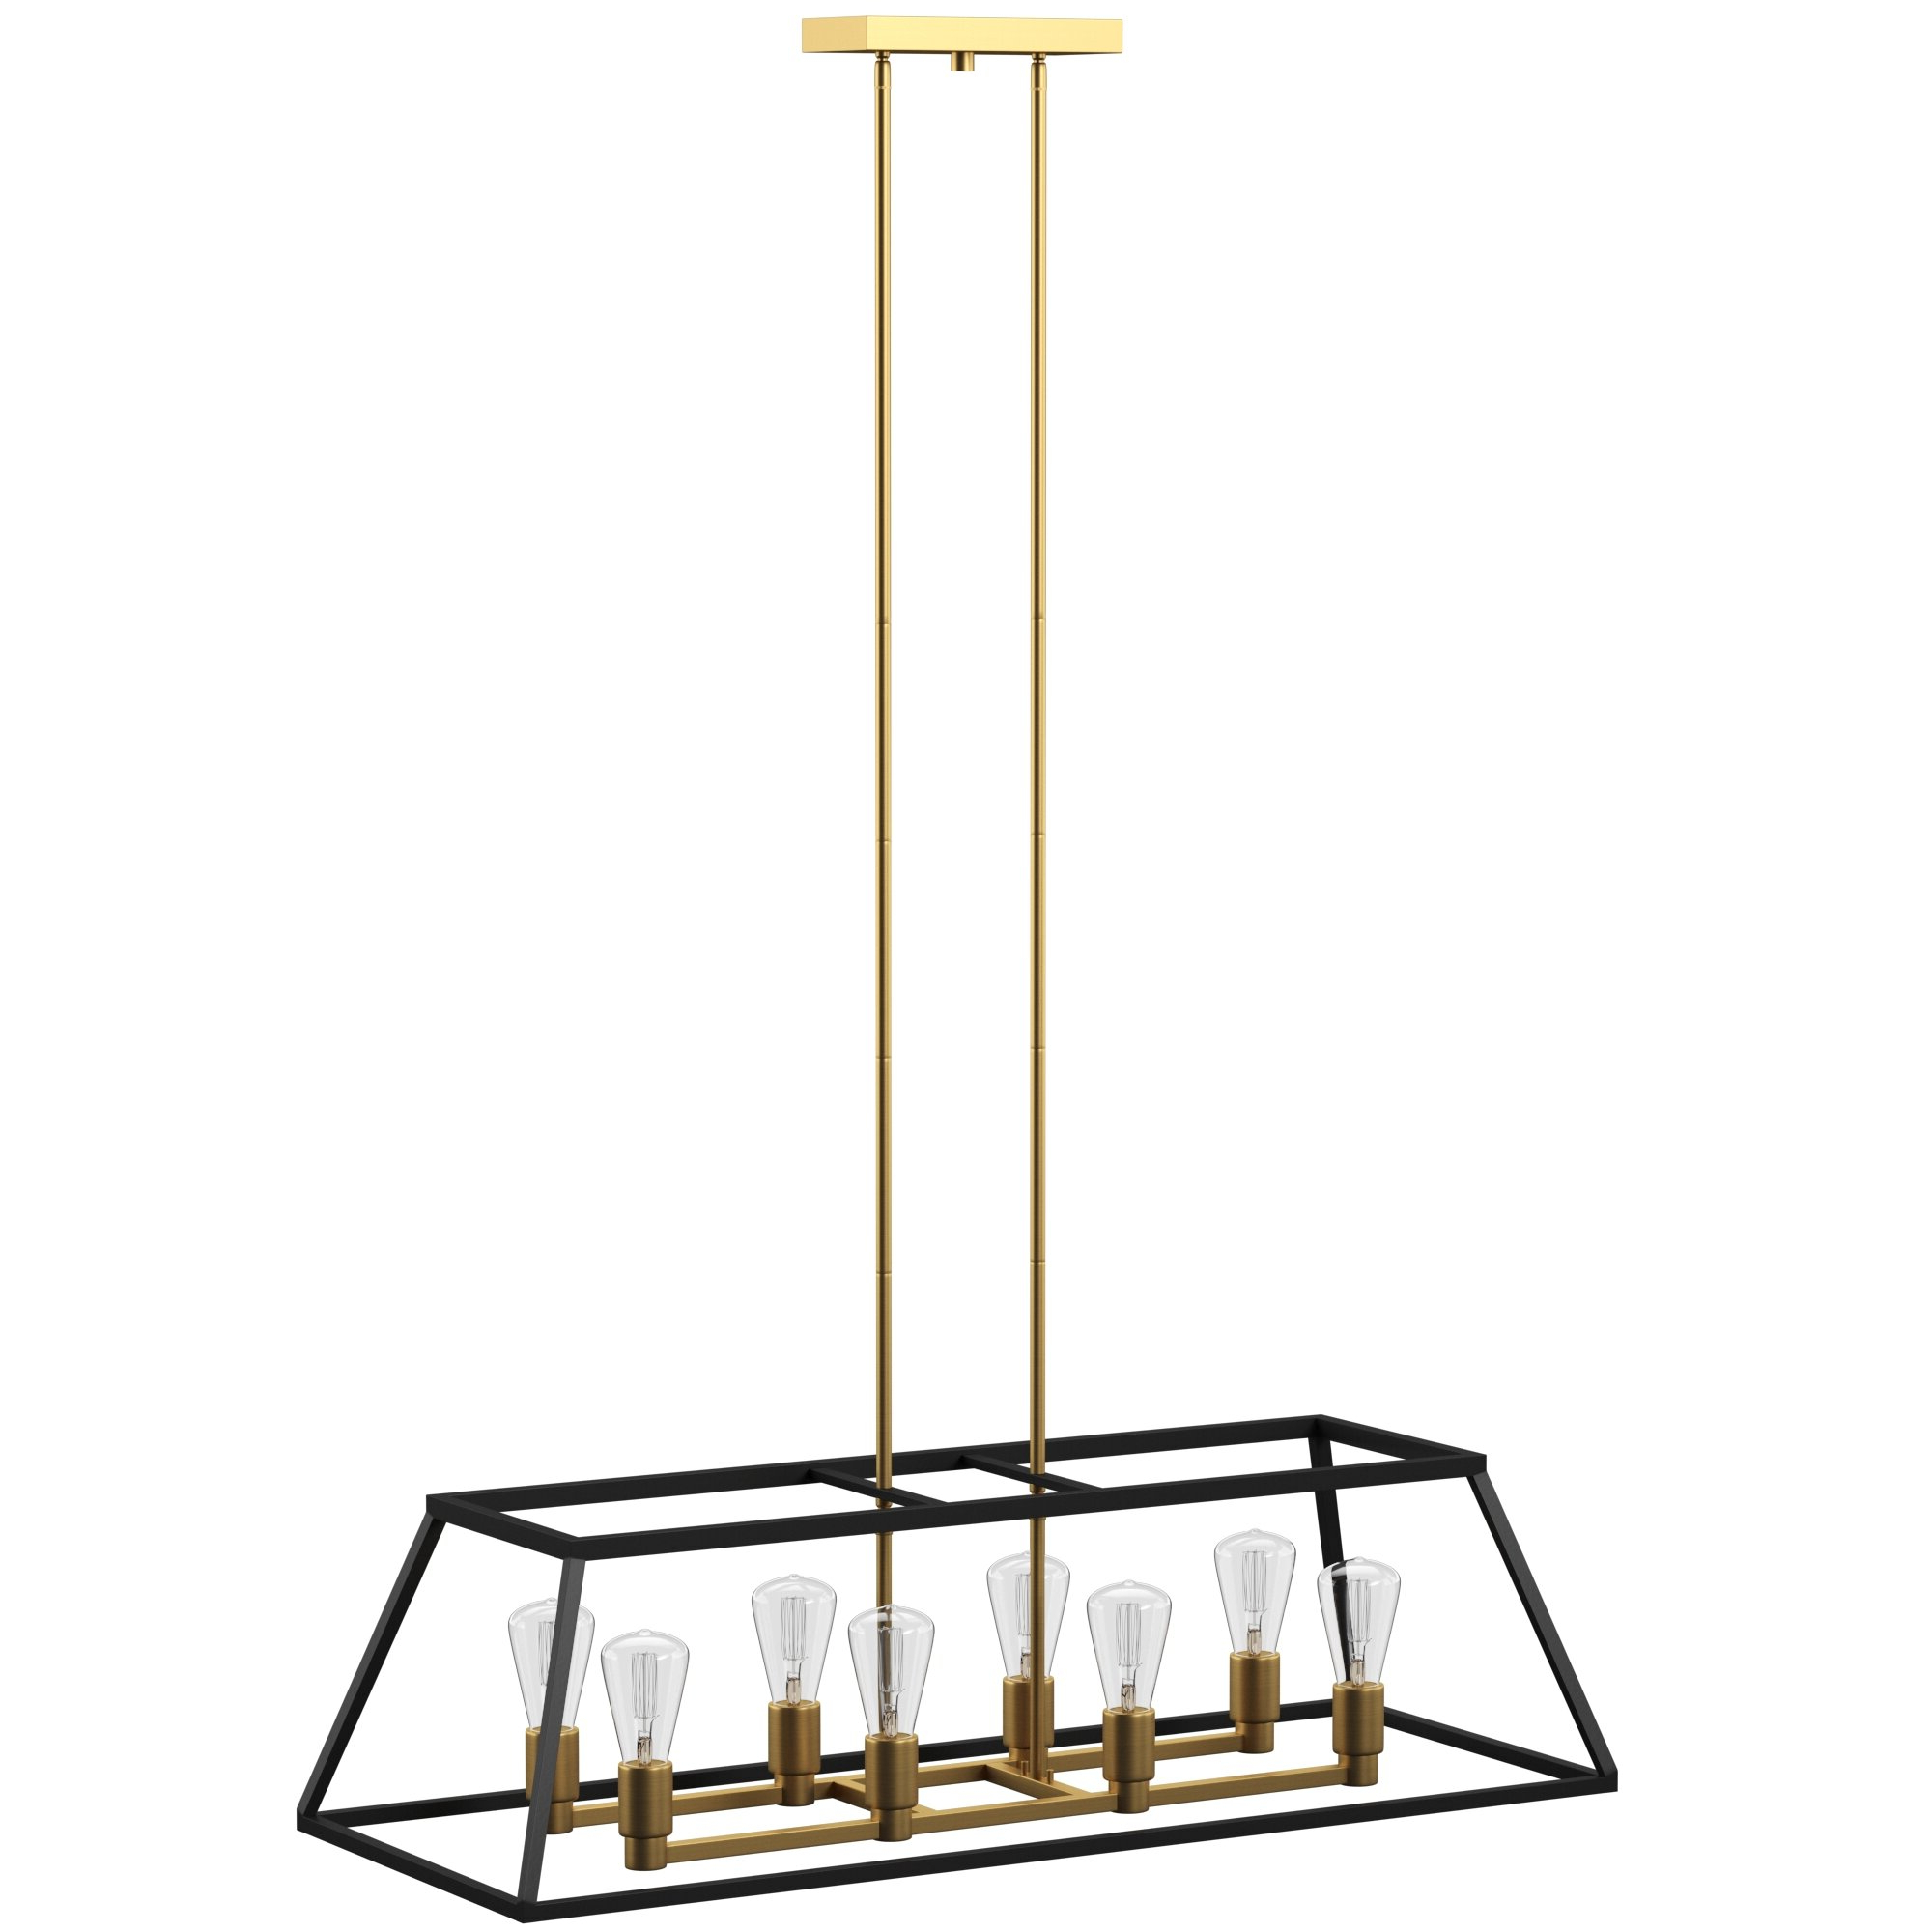 Best And Newest Shisler 8 Light Kitchen Island Linear Pendant Pertaining To Sousa 4 Light Kitchen Island Linear Pendants (View 18 of 25)